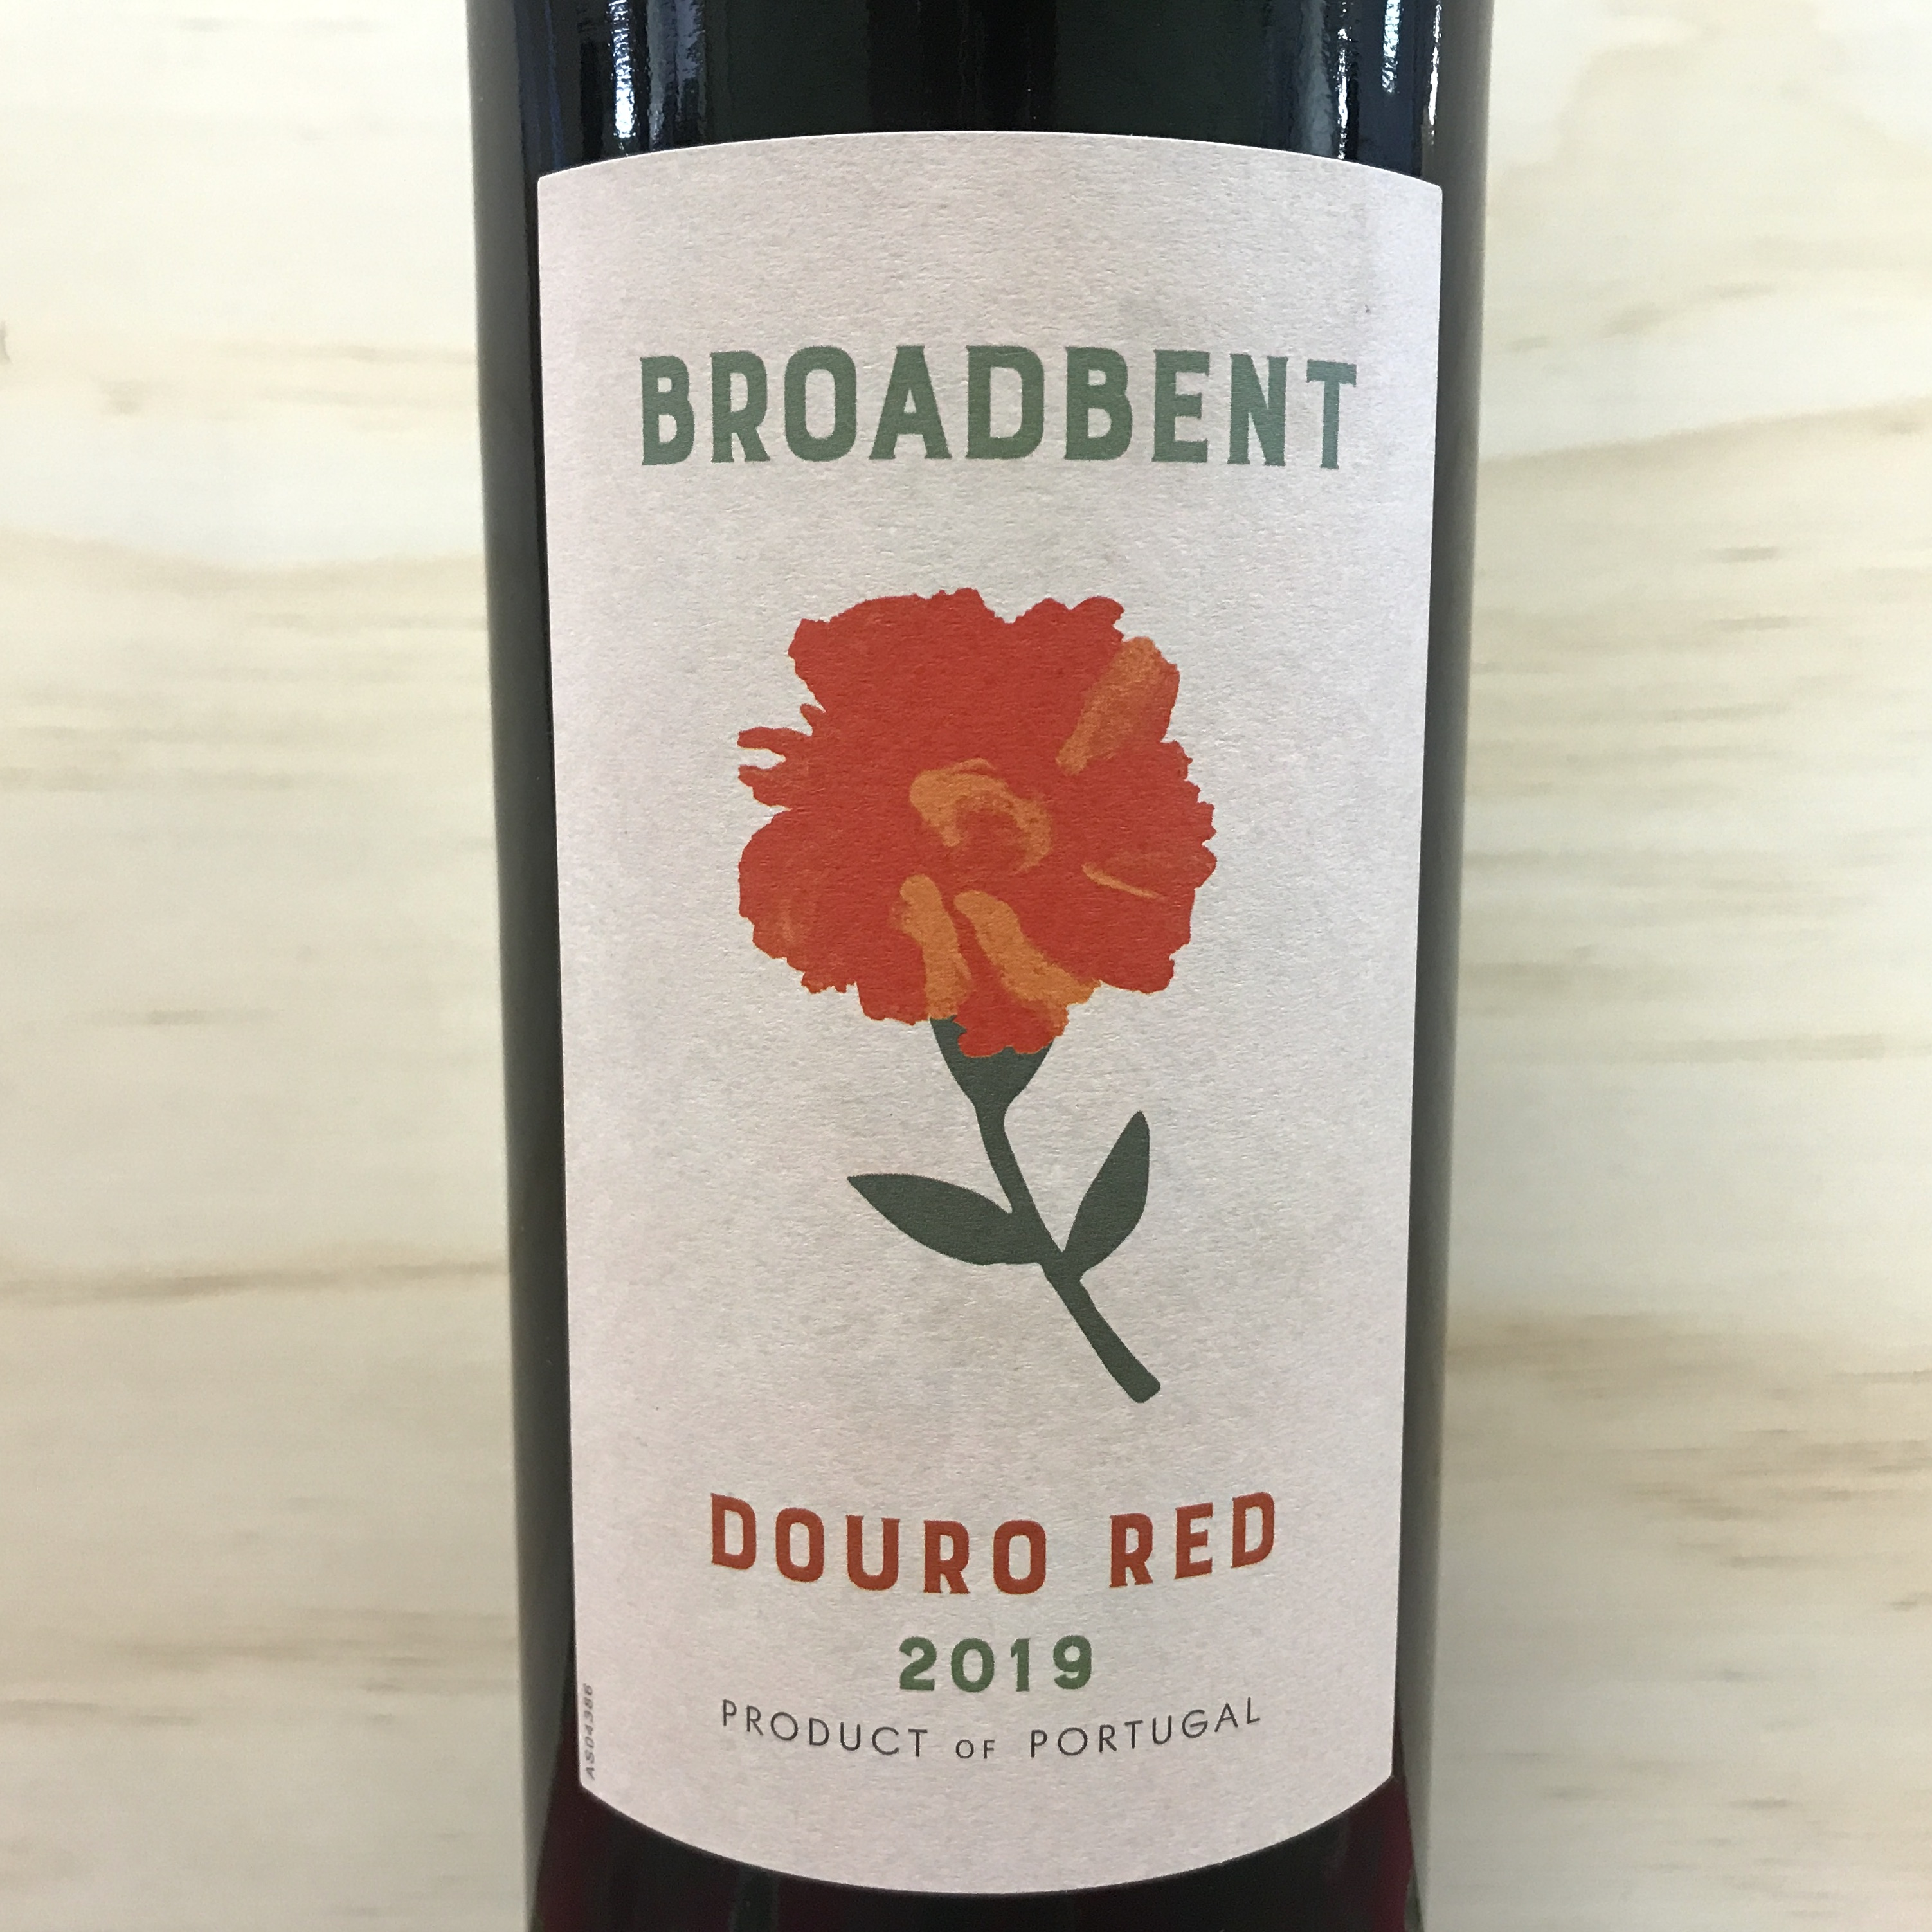 Broadbent Douro Red 2019